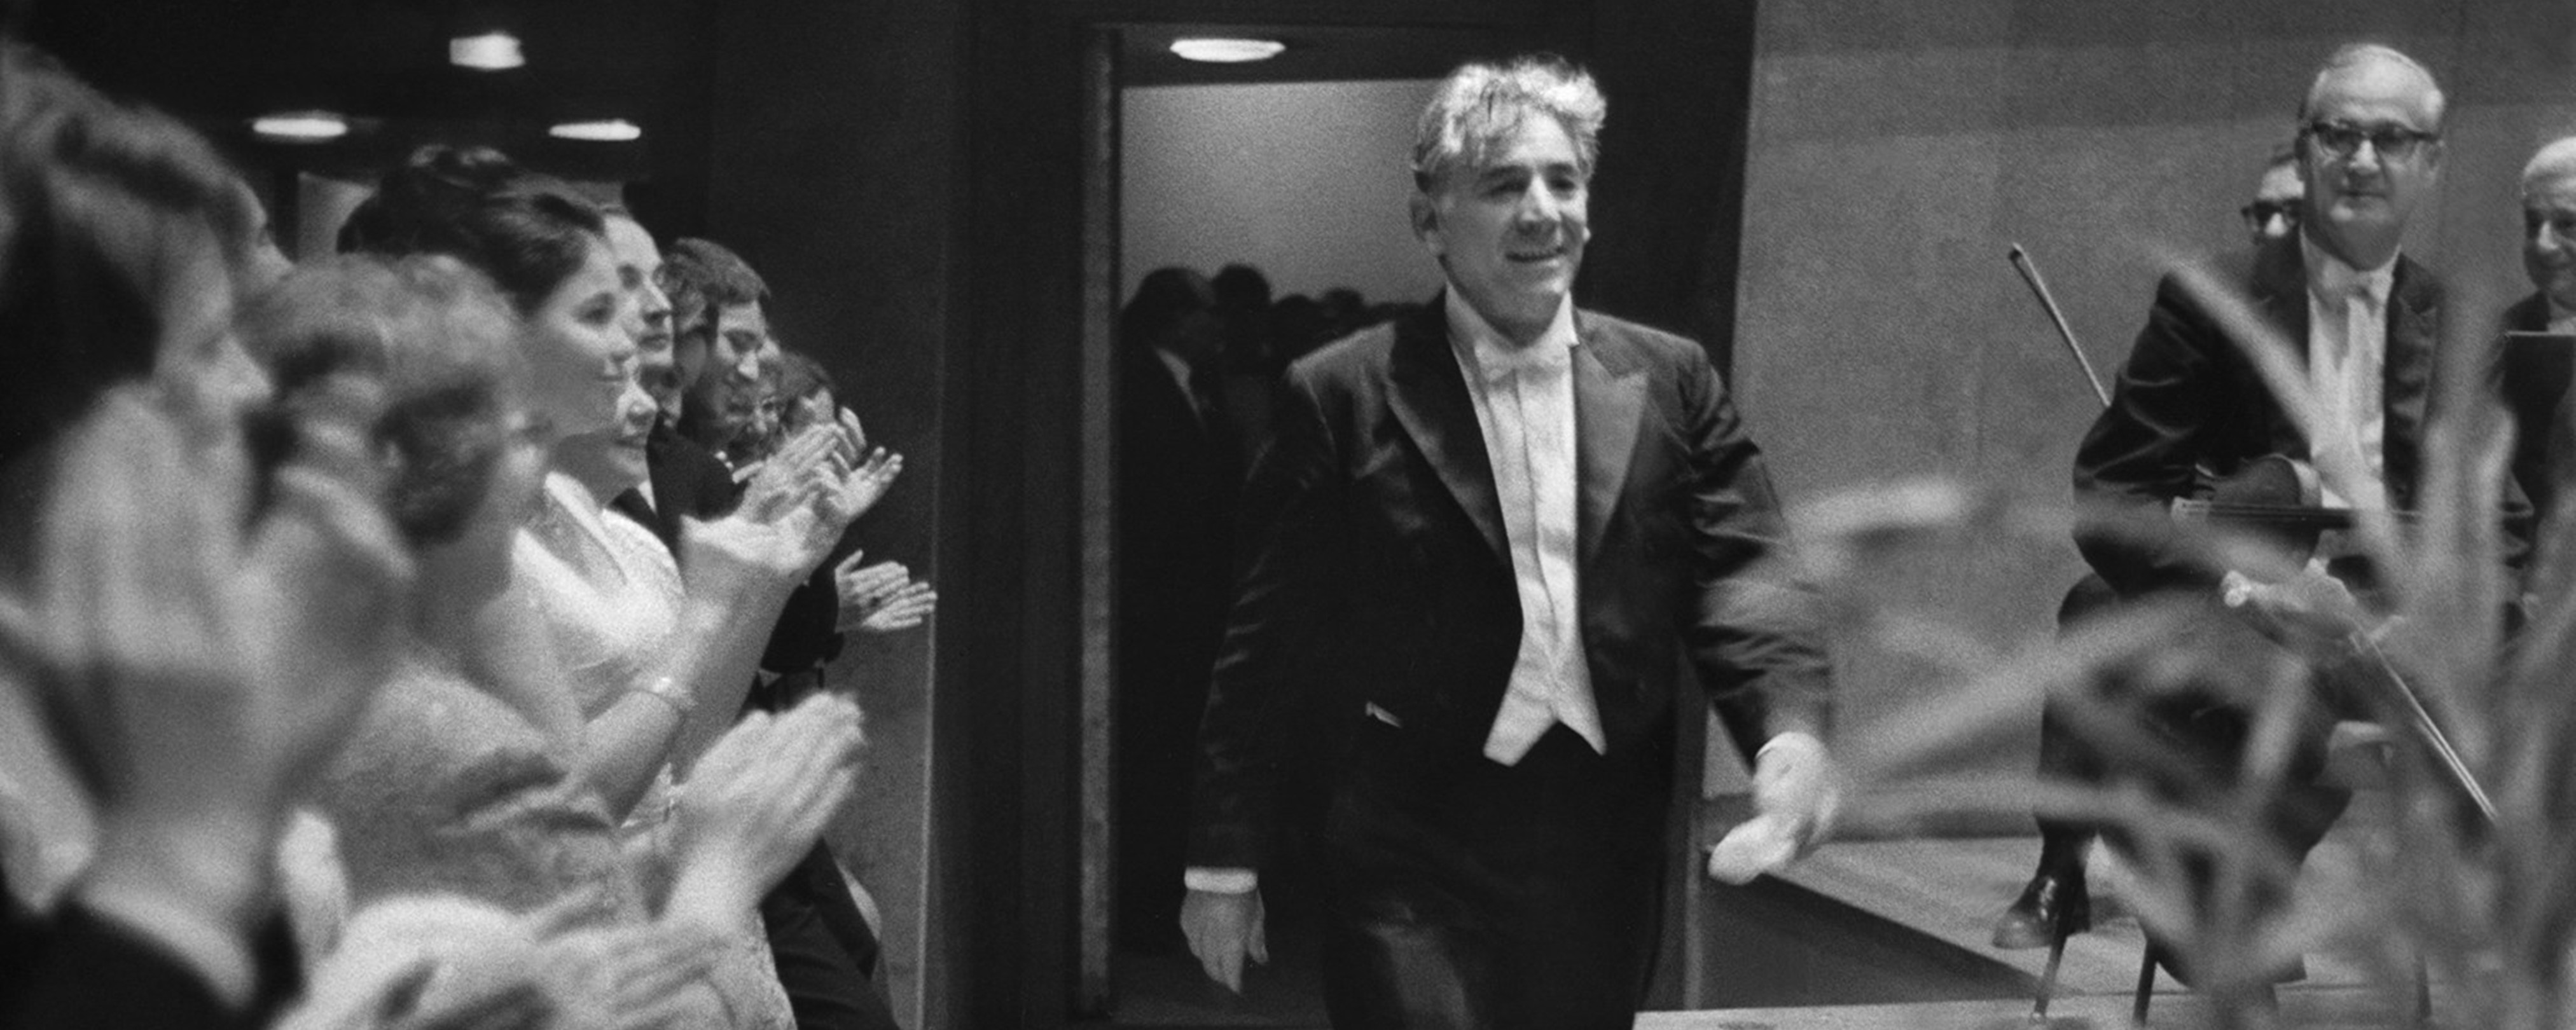 the life and times of leonard bernstein Celebrating leonard bernstein's  below for only $90 for an evening of bernstein's broadway followed by sunday's 7:30pm  romance in hard times.